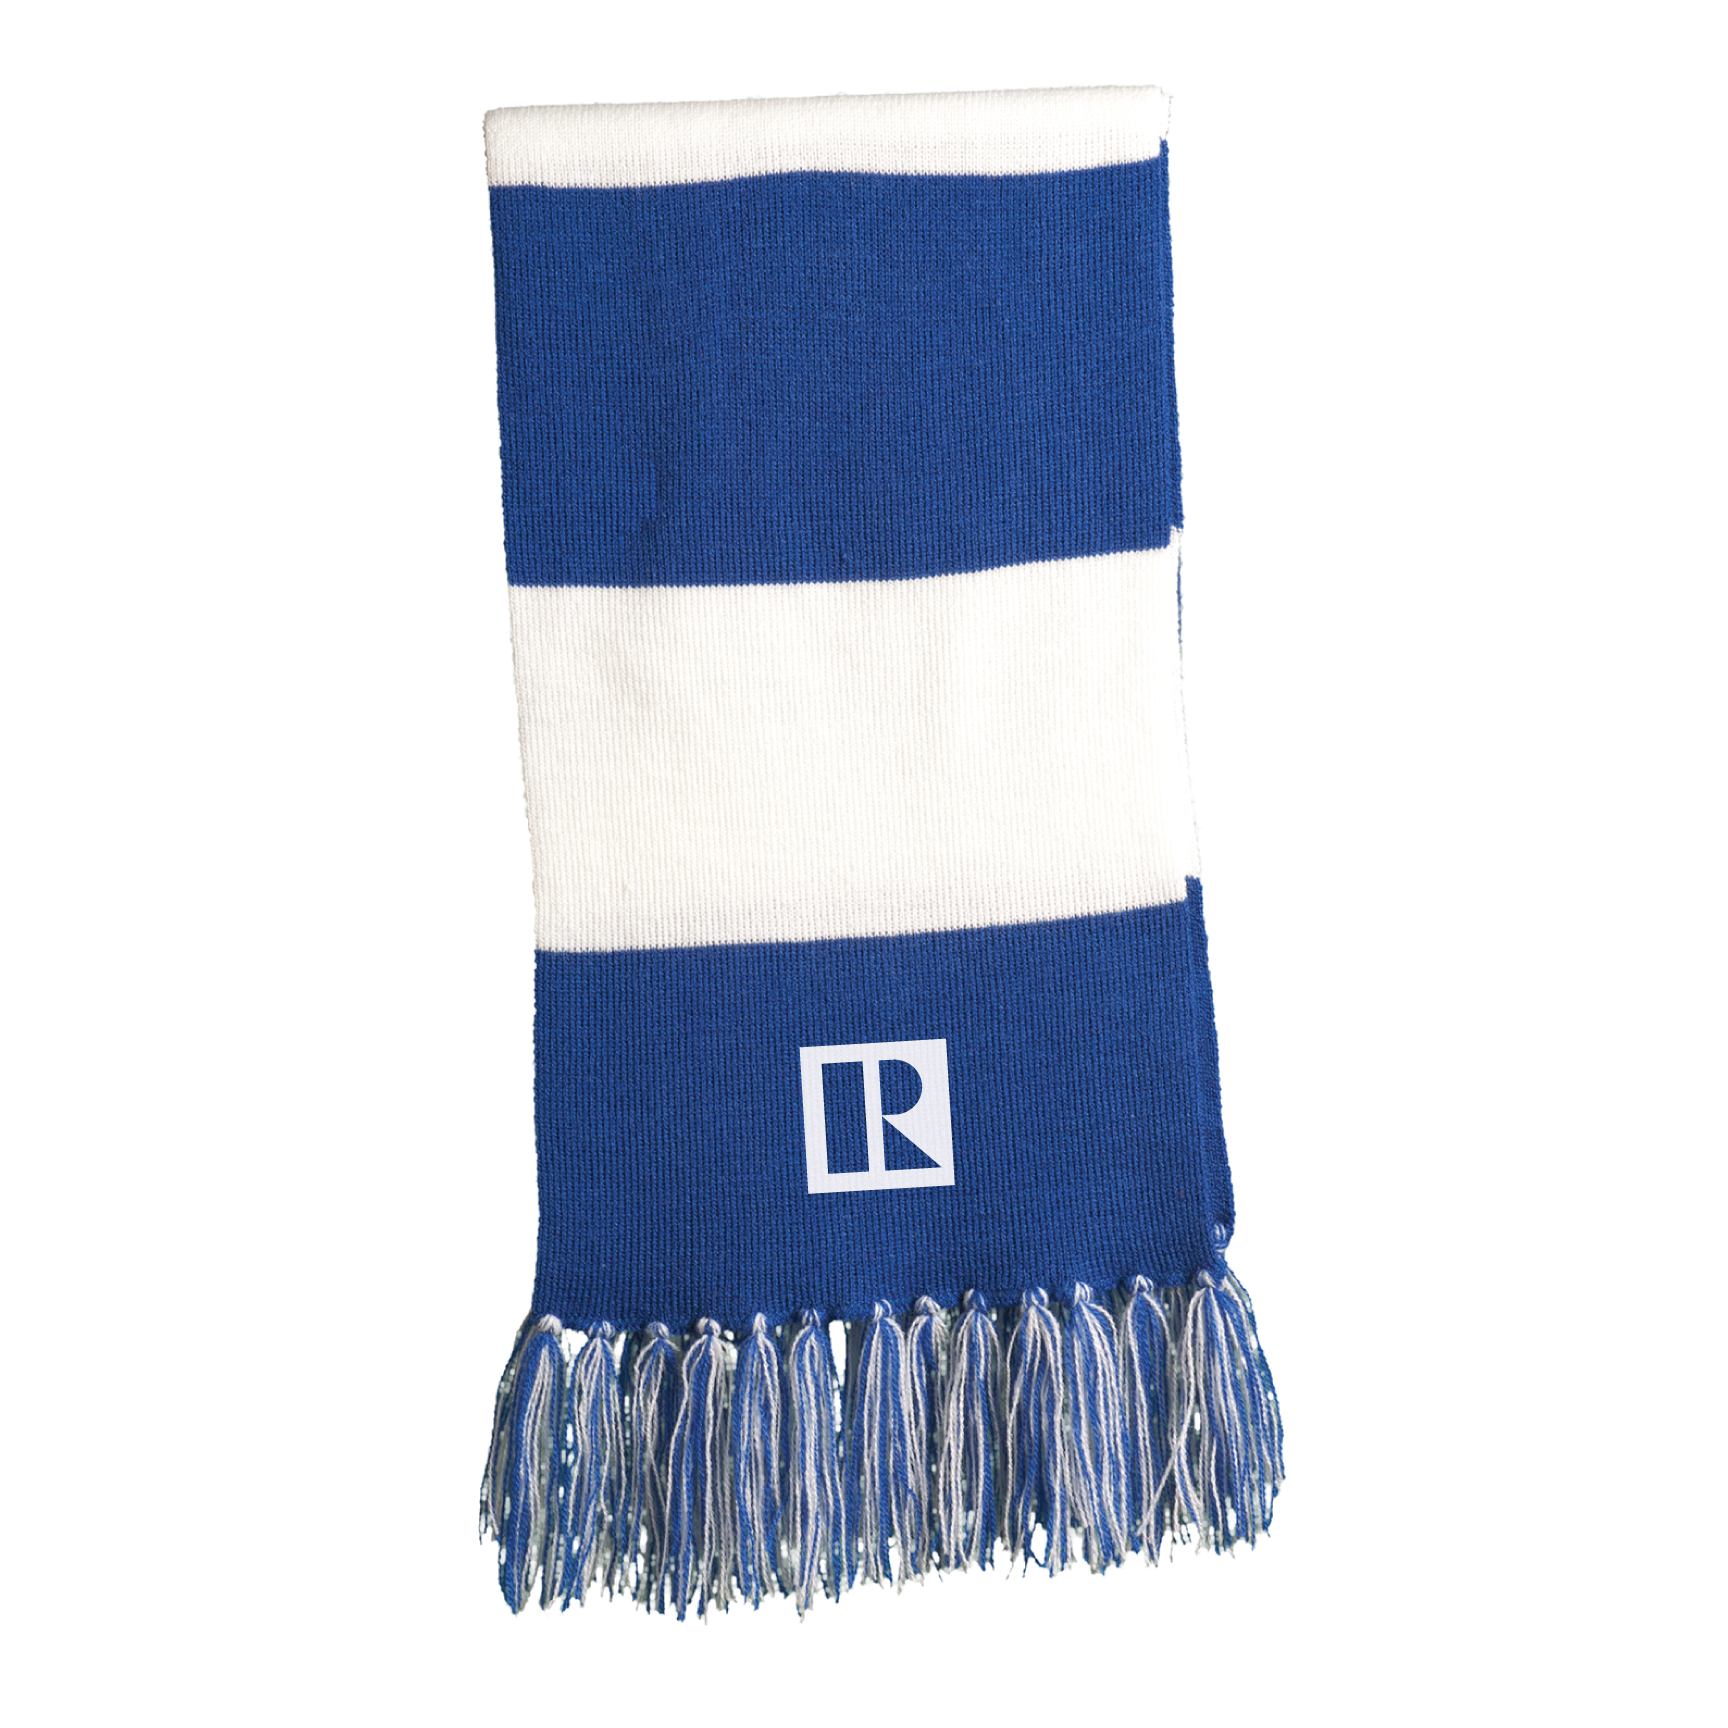 Striped Spectator Scarf - RCG1460